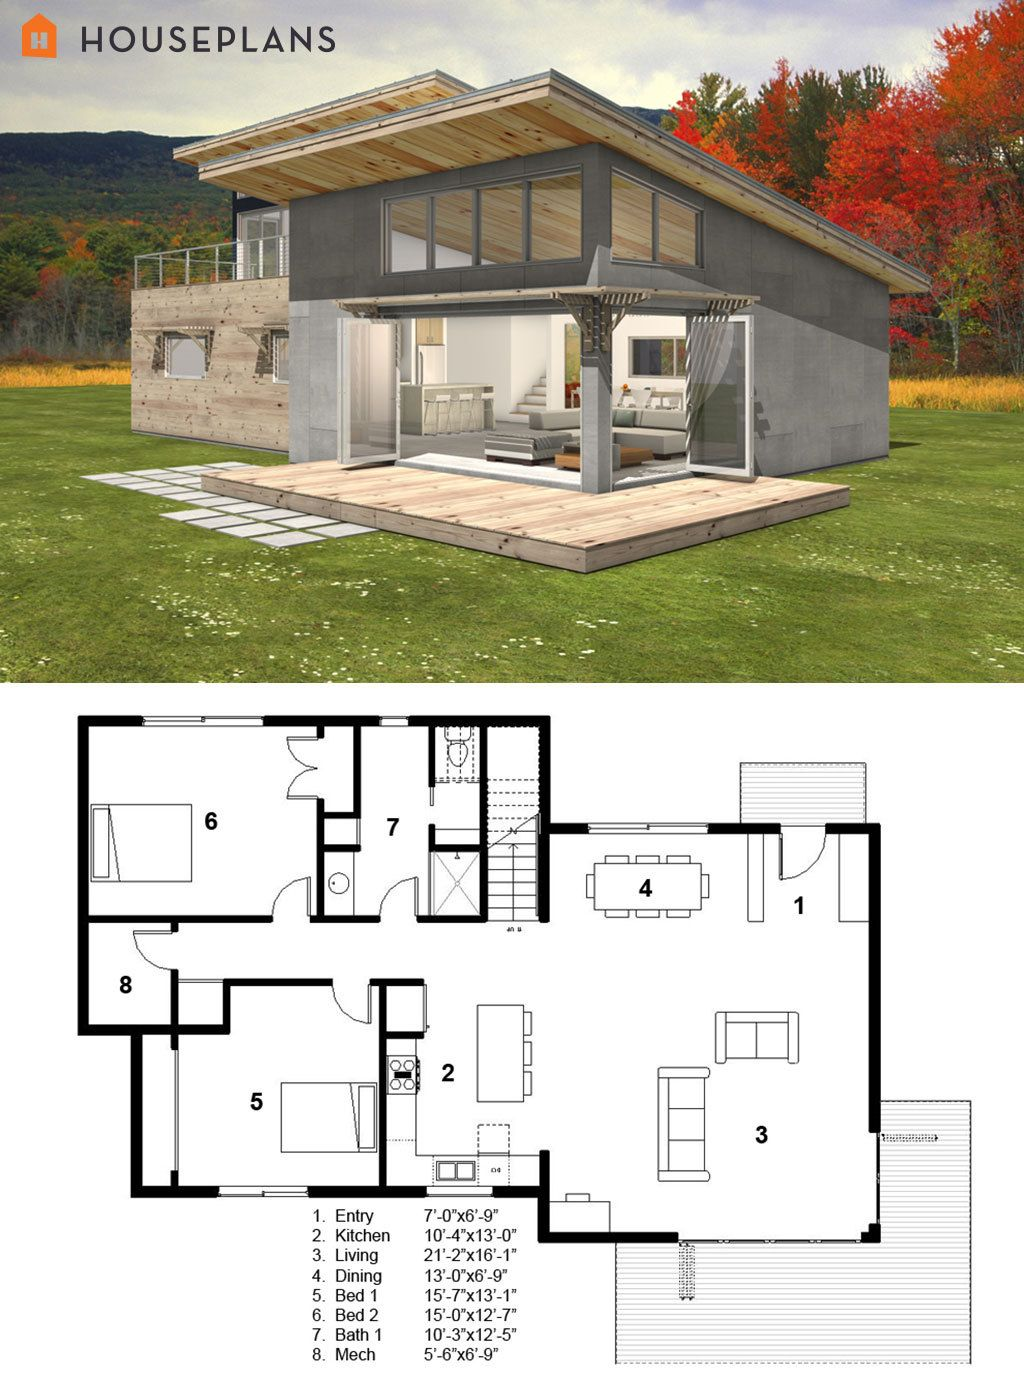 Small modern cabin house plan by freegreen energy for Design homes cabins